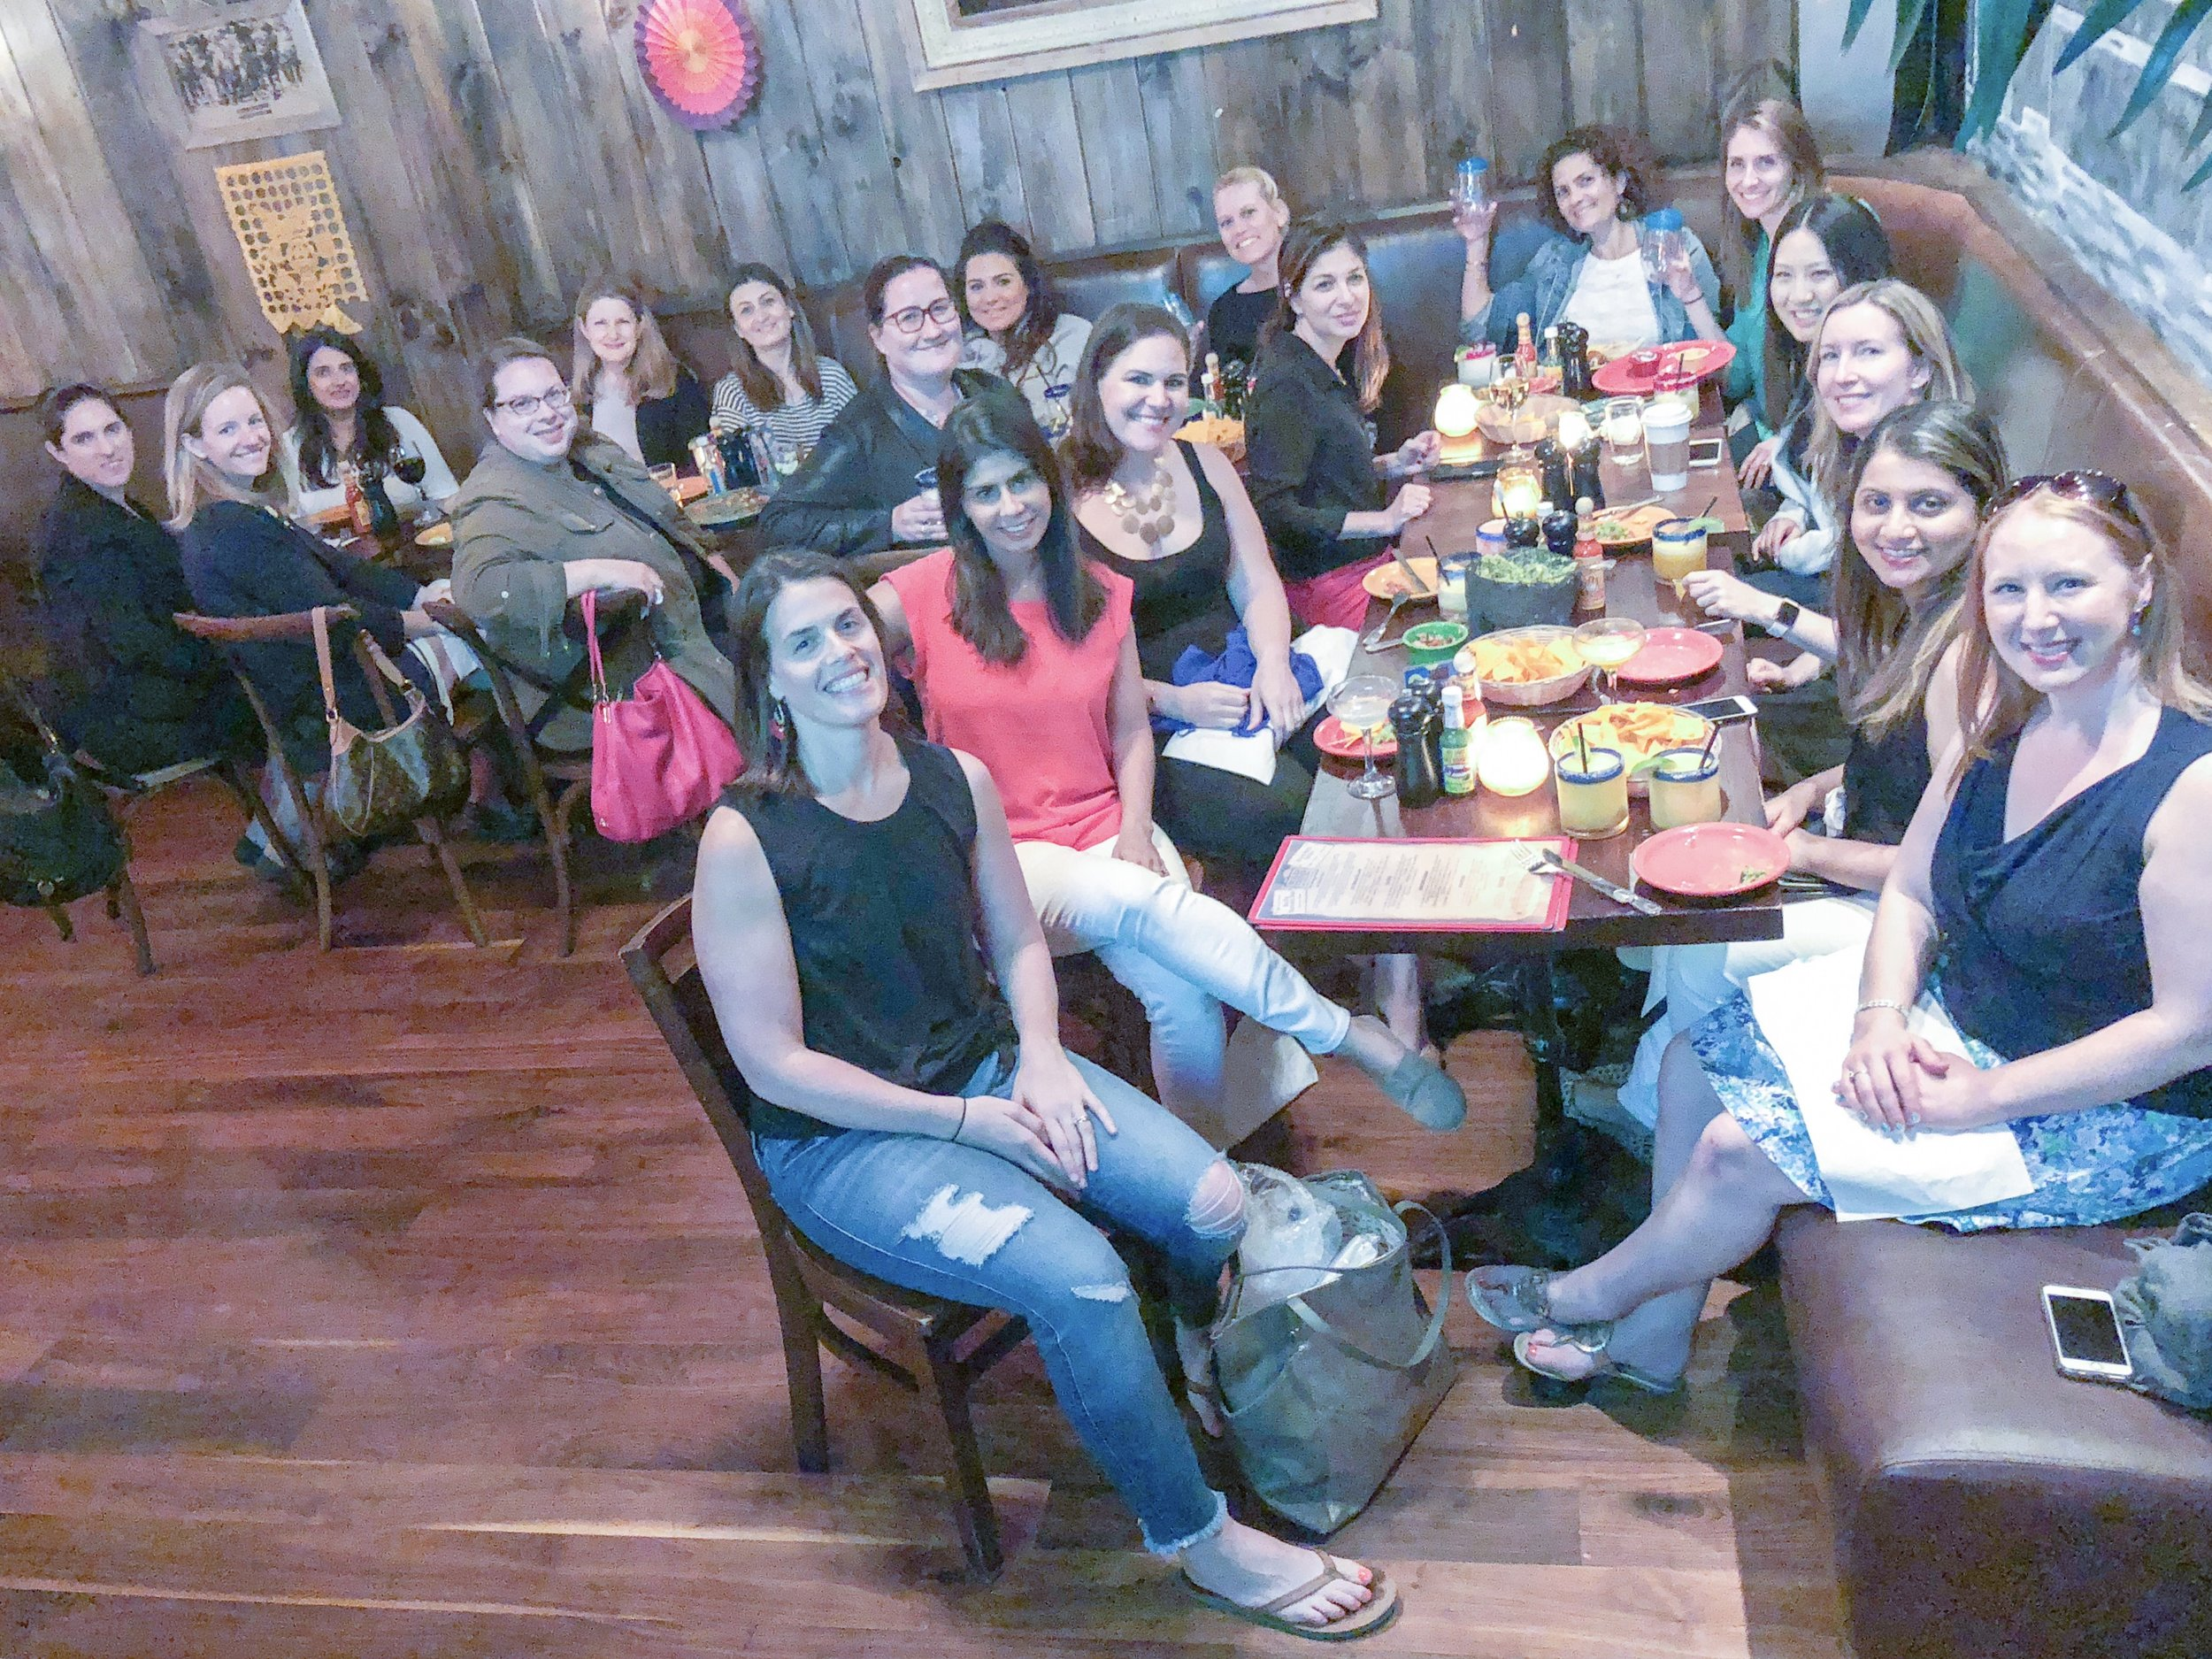 Moms' Night Out - Every mom deserves a night out! So put someone else in charge of bedtime and treat yourself to a well-earned drink and bite that you can enjoy in peace while getting to know other moms. Held monthly.